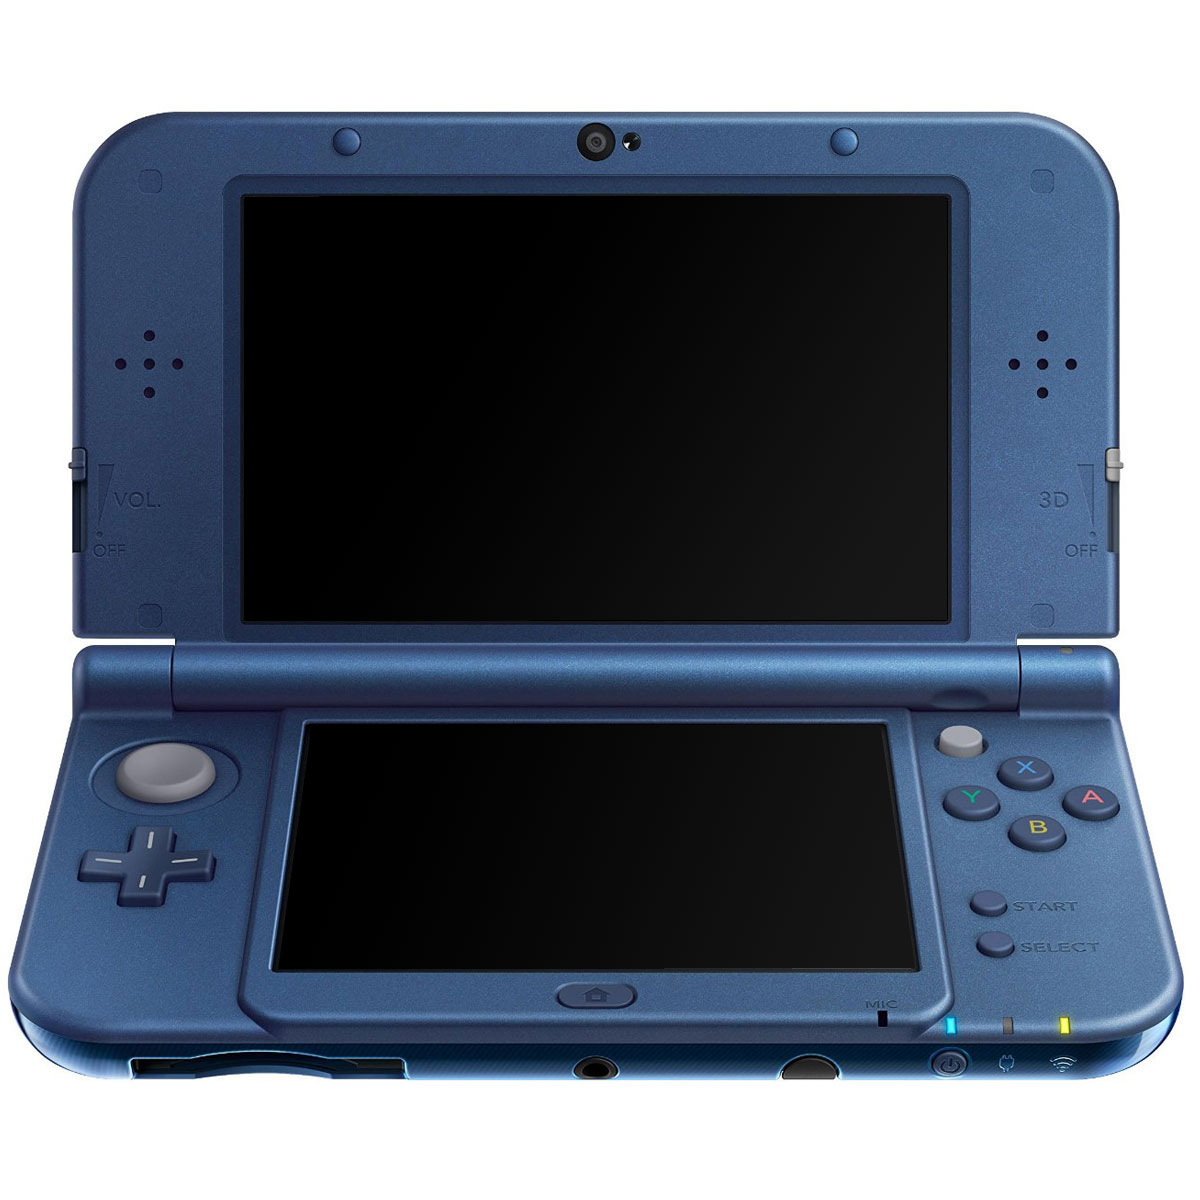 nintendo new 3ds xl bleue console nintendo 3ds nintendo sur. Black Bedroom Furniture Sets. Home Design Ideas